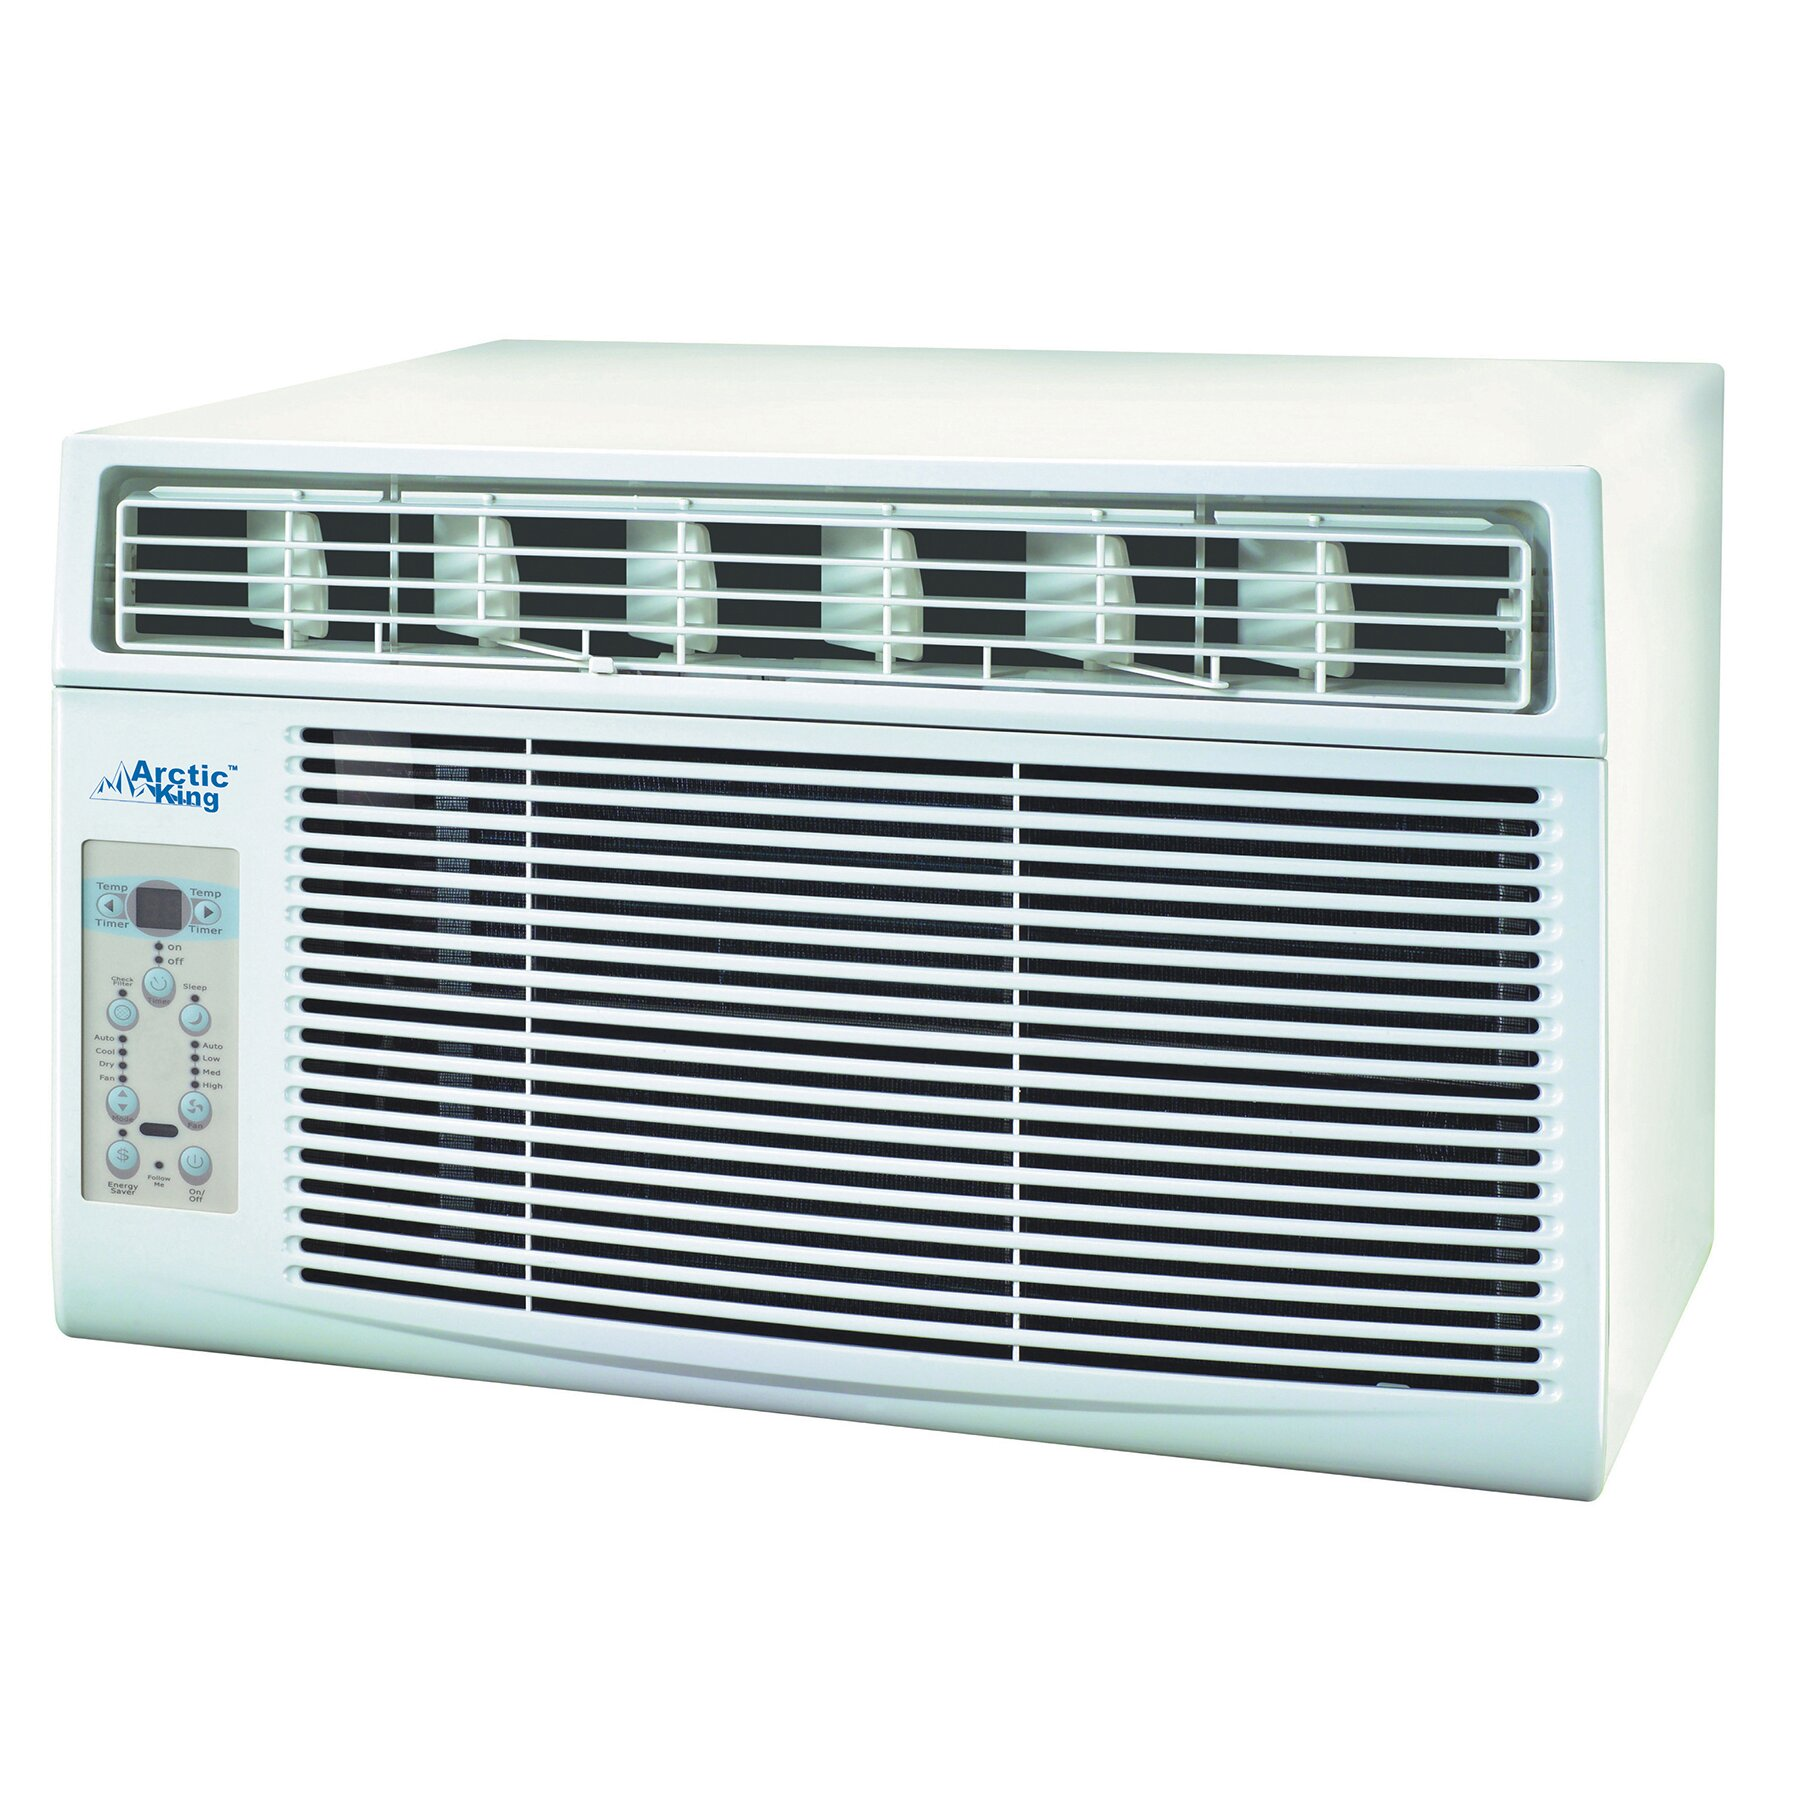 Arctic king 12 000 btu window air conditioner with remote for 18 000 btu window air conditioner